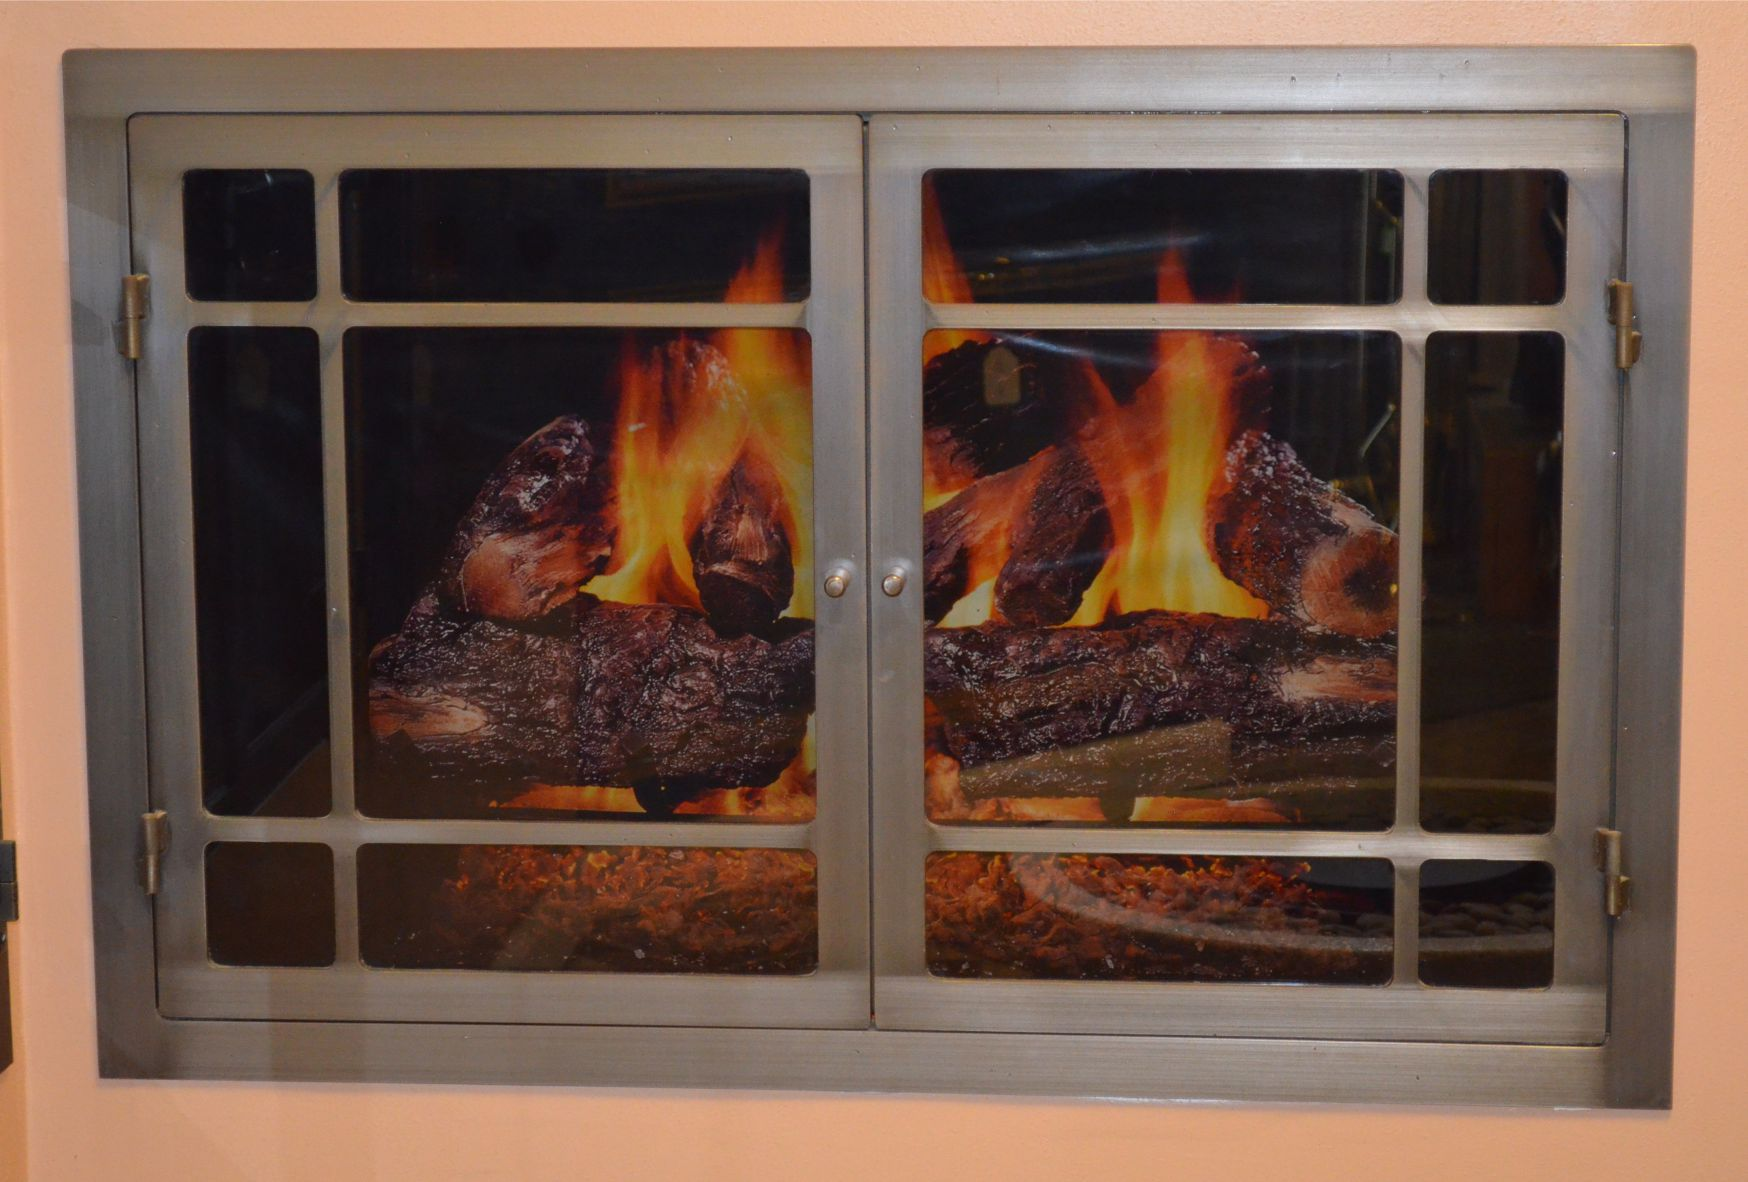 Hearthworks Fireplace Door In Natural Iron Finish 37x24 Inch